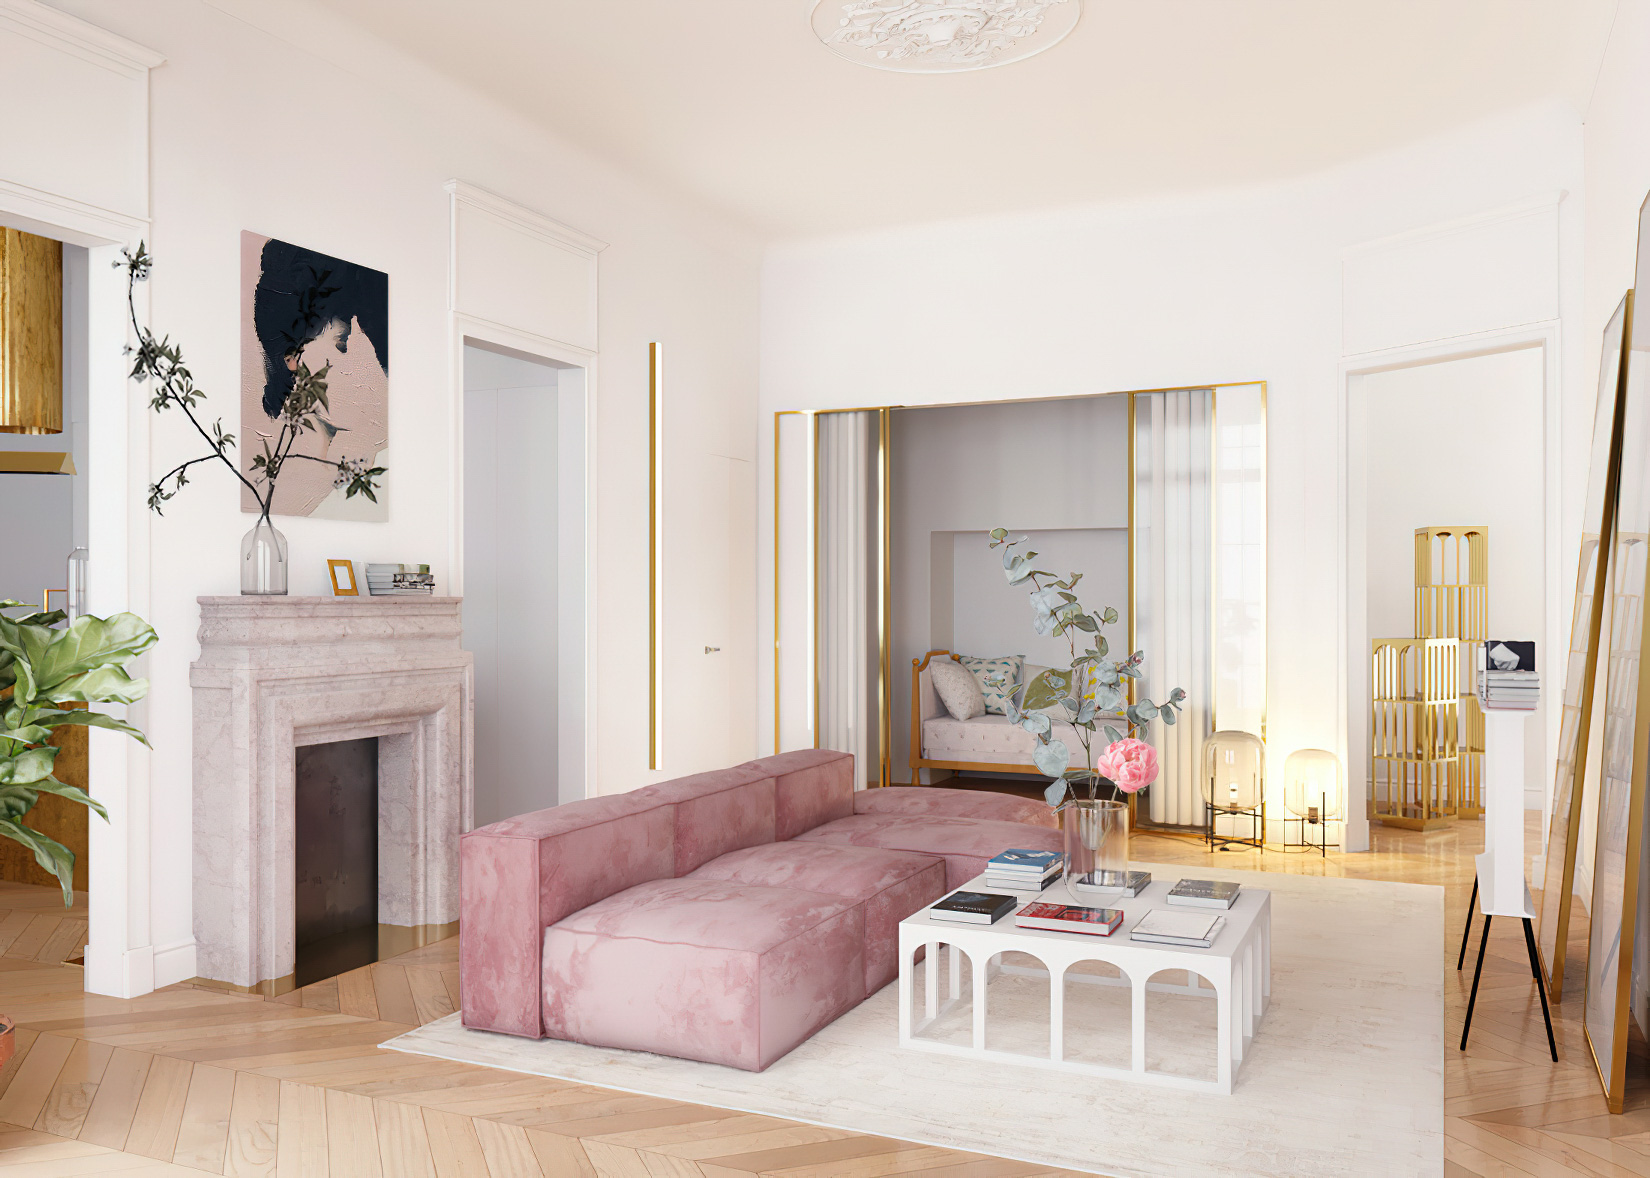 Parisian Apartment Interior Design New York, USA - Harry Nuriev